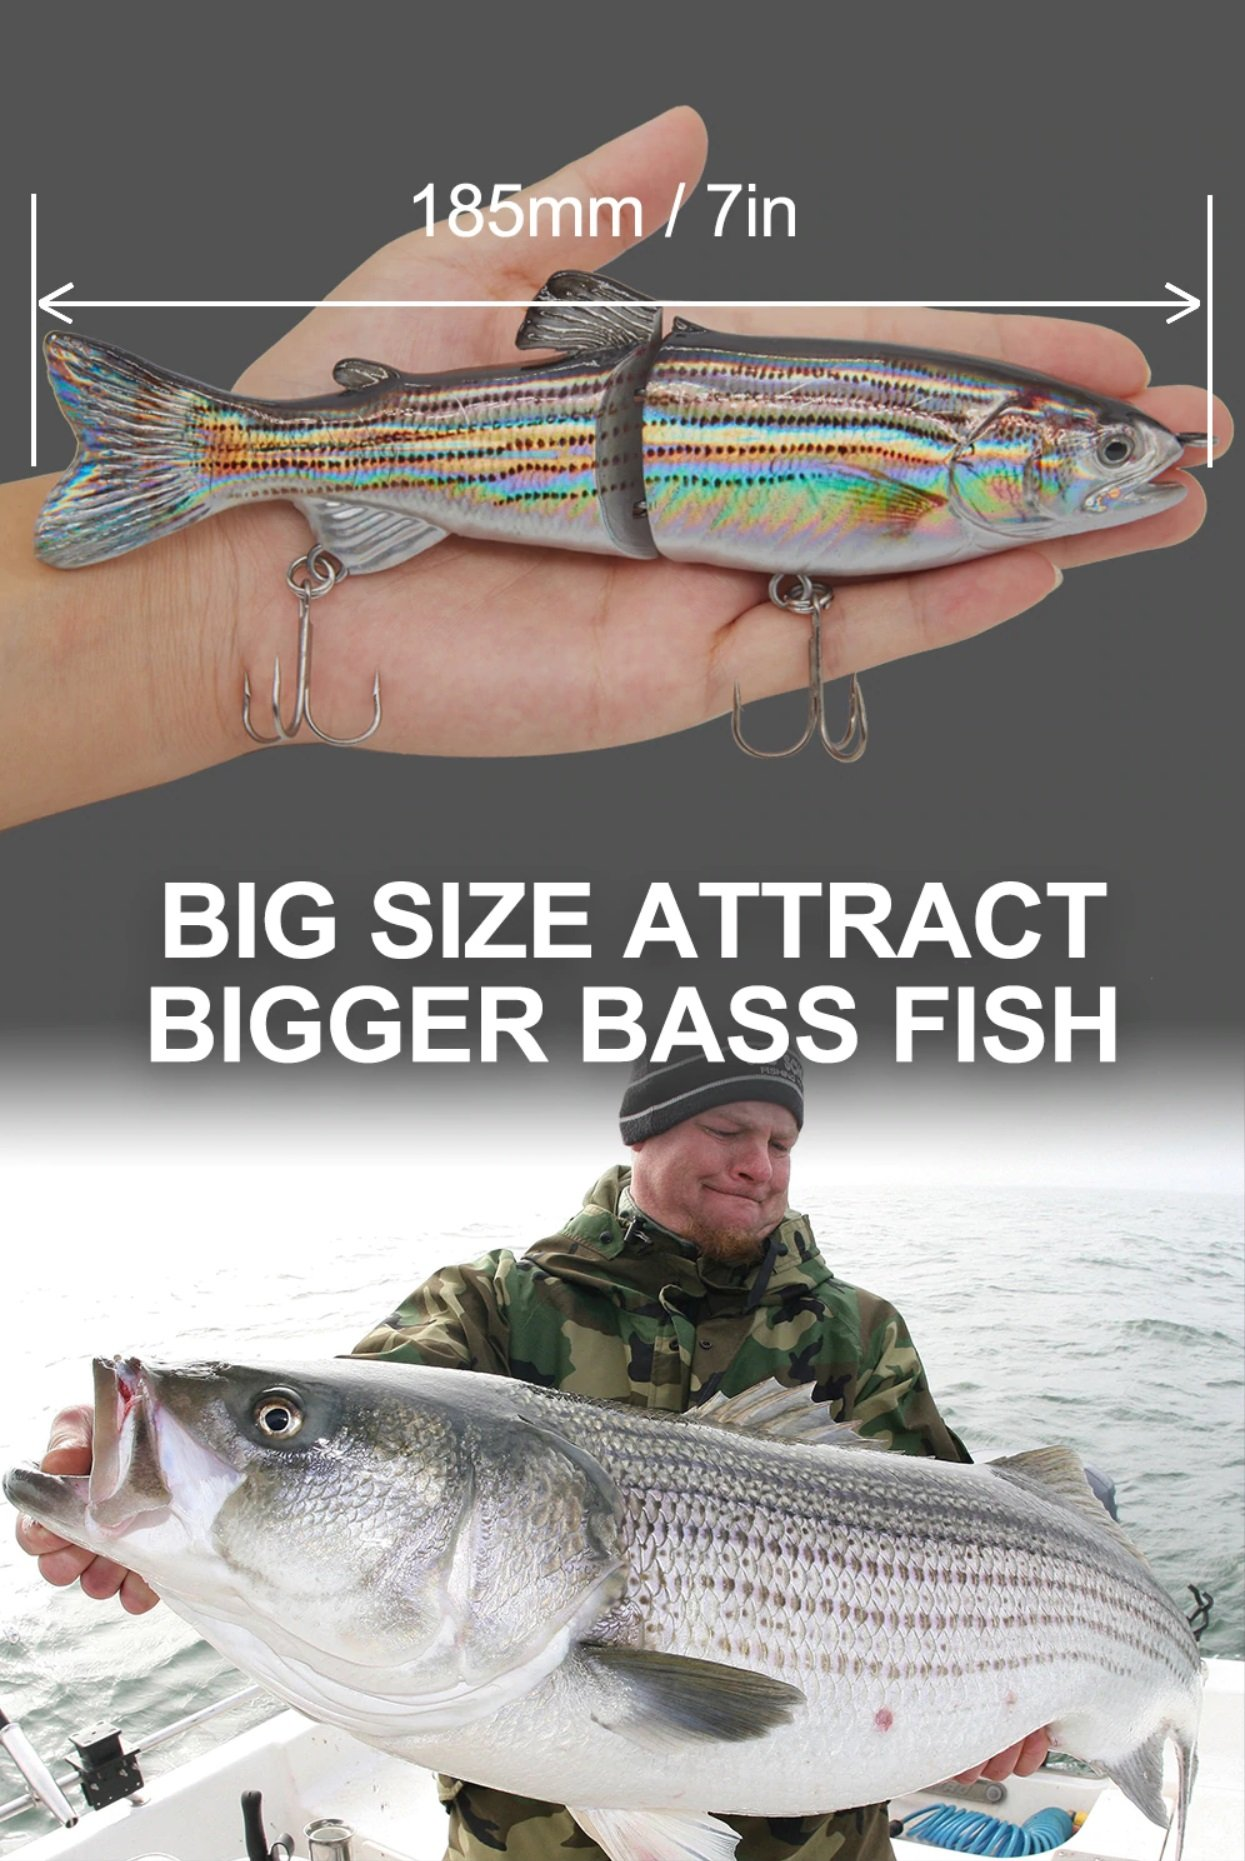 Glide Bait Waver 185 - Bigger baits catches bigger fish